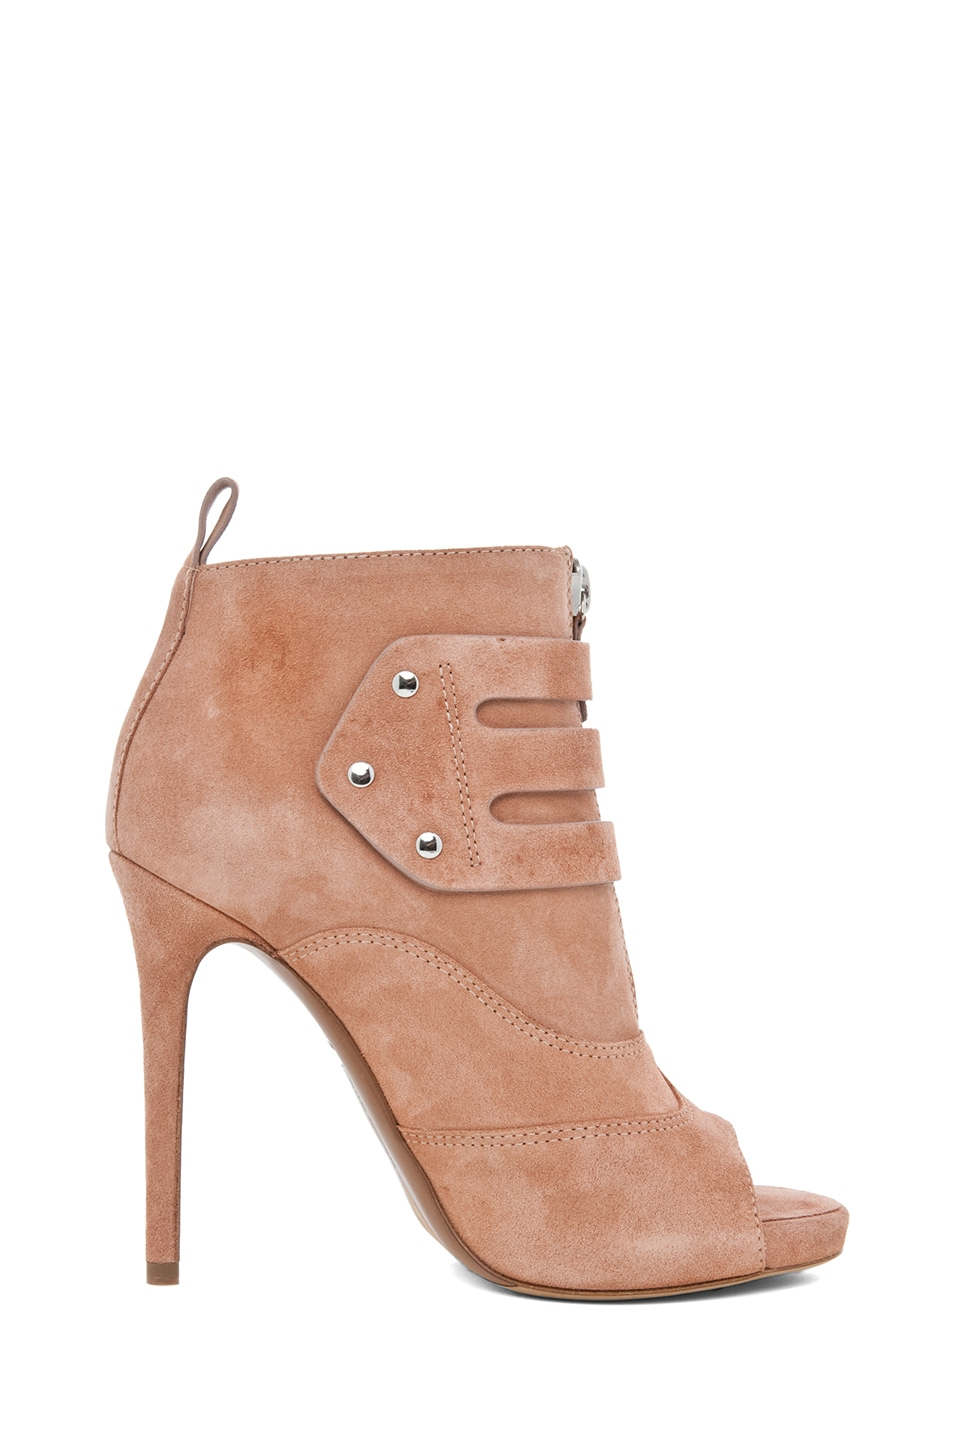 Image 5 of Tabitha Simmons Eva Suede Bootie in Rose Split Suede